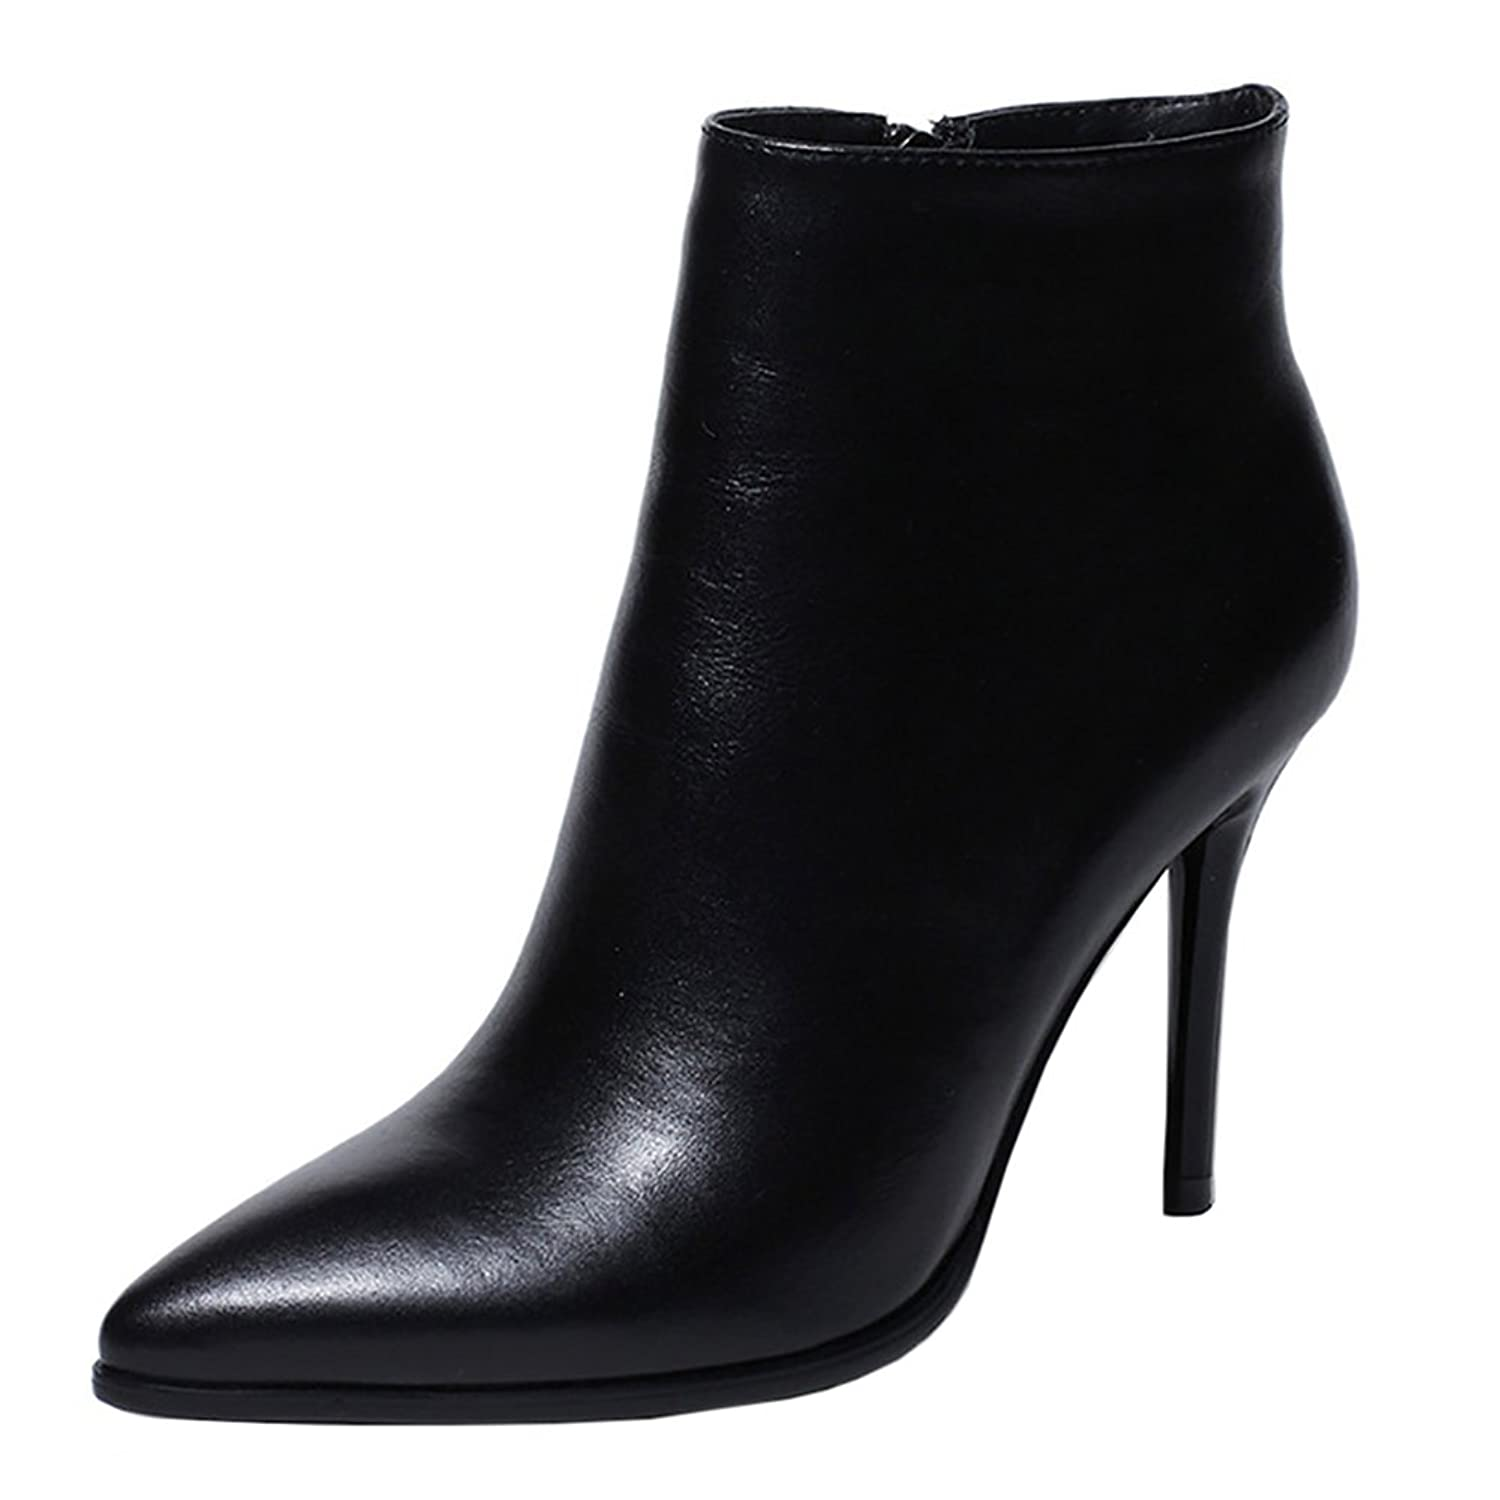 Women's Genuine Leather Stiletto High Heel Pointed Toe Red Ankle Boot Handmade Booties